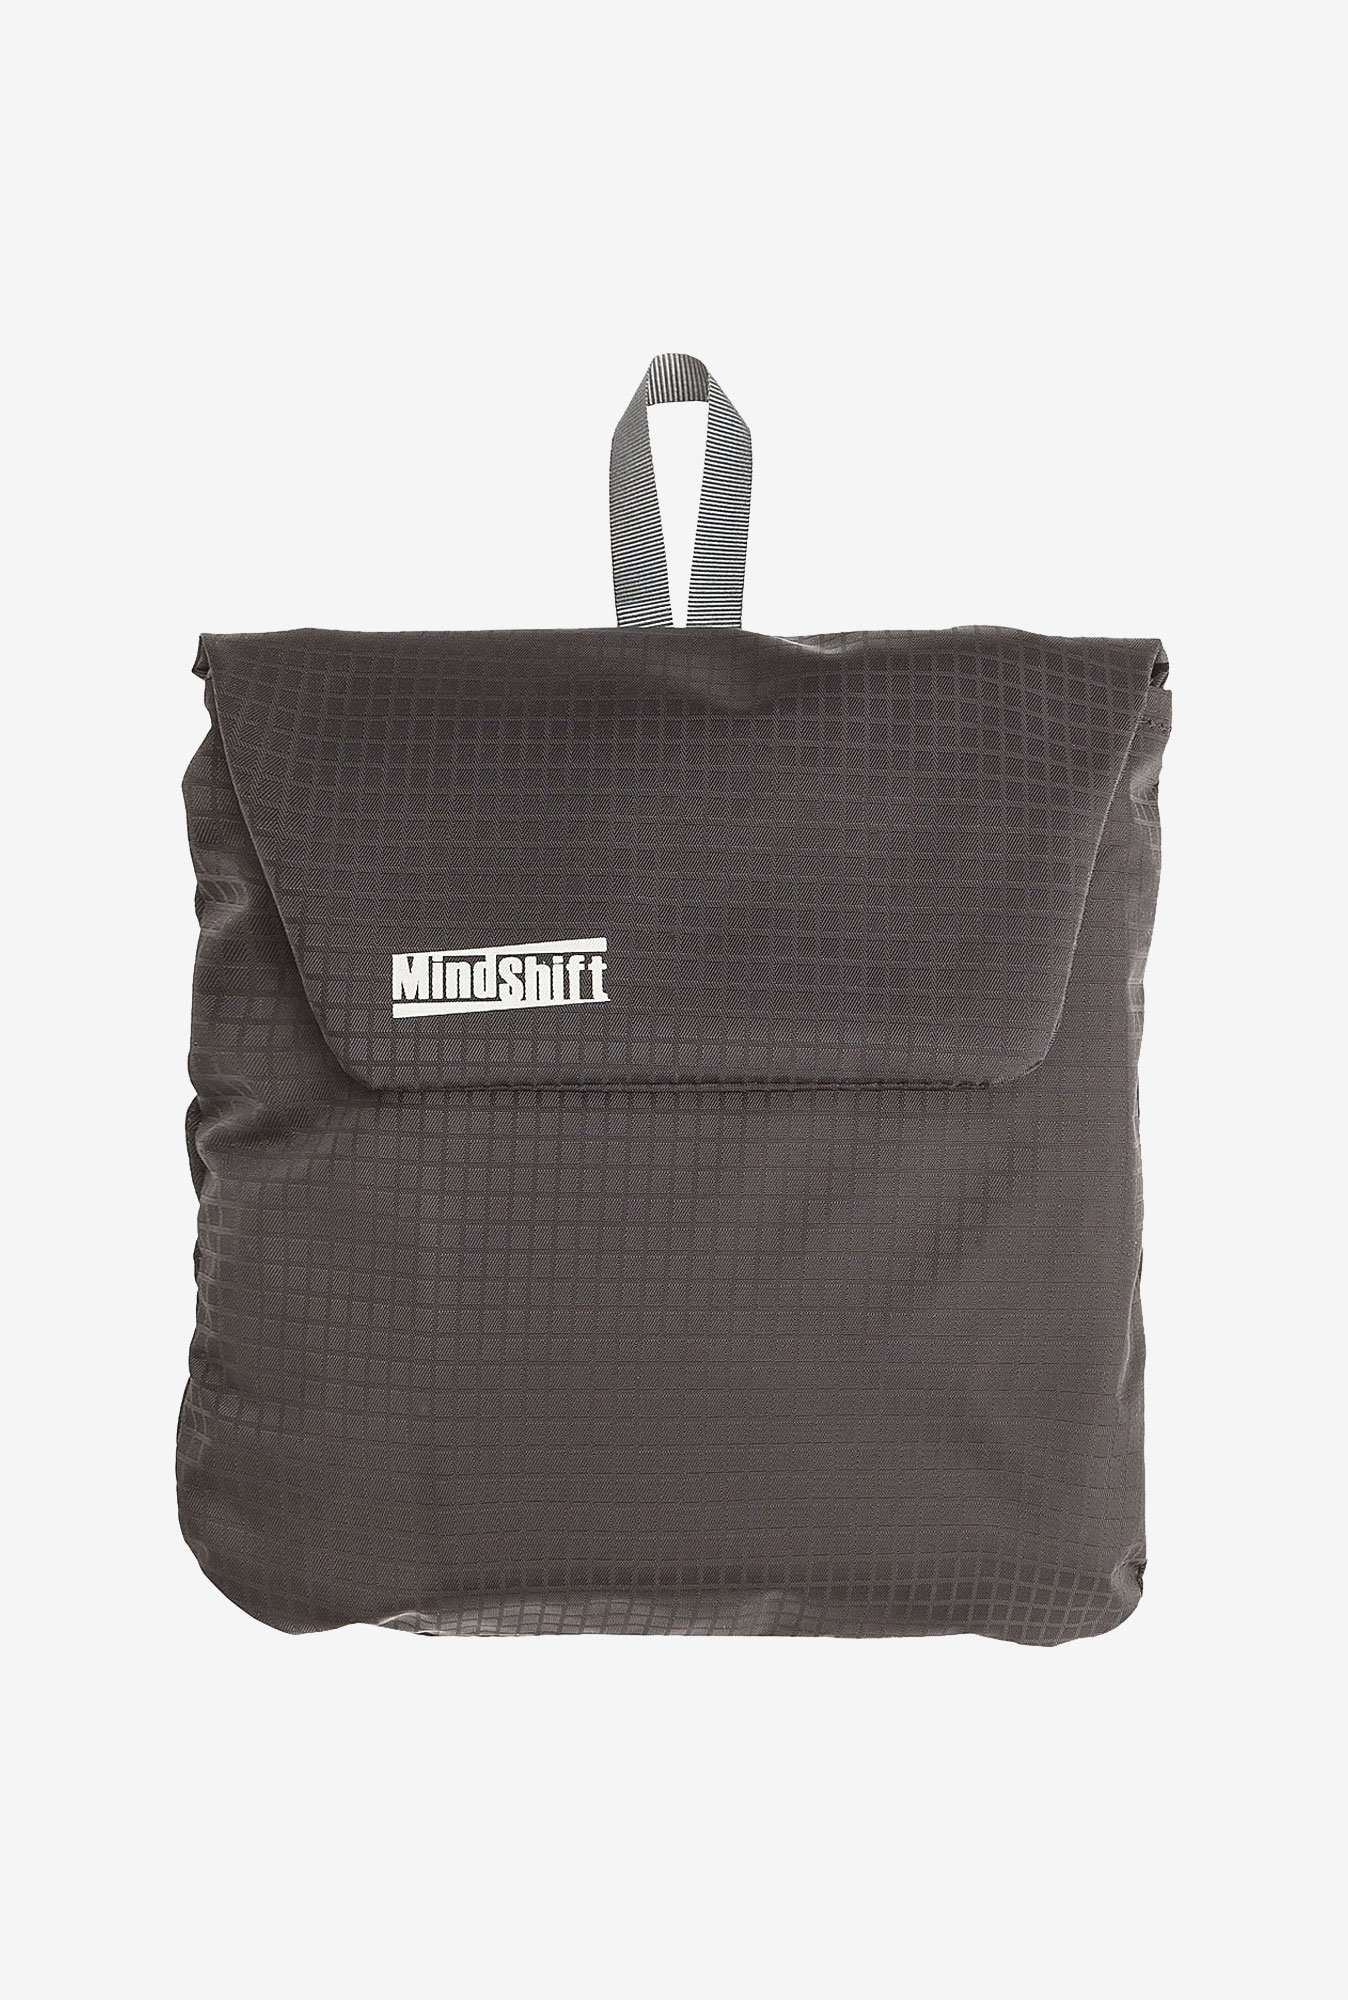 Mindshift Gear R180 Travel Away Raincover (Black)